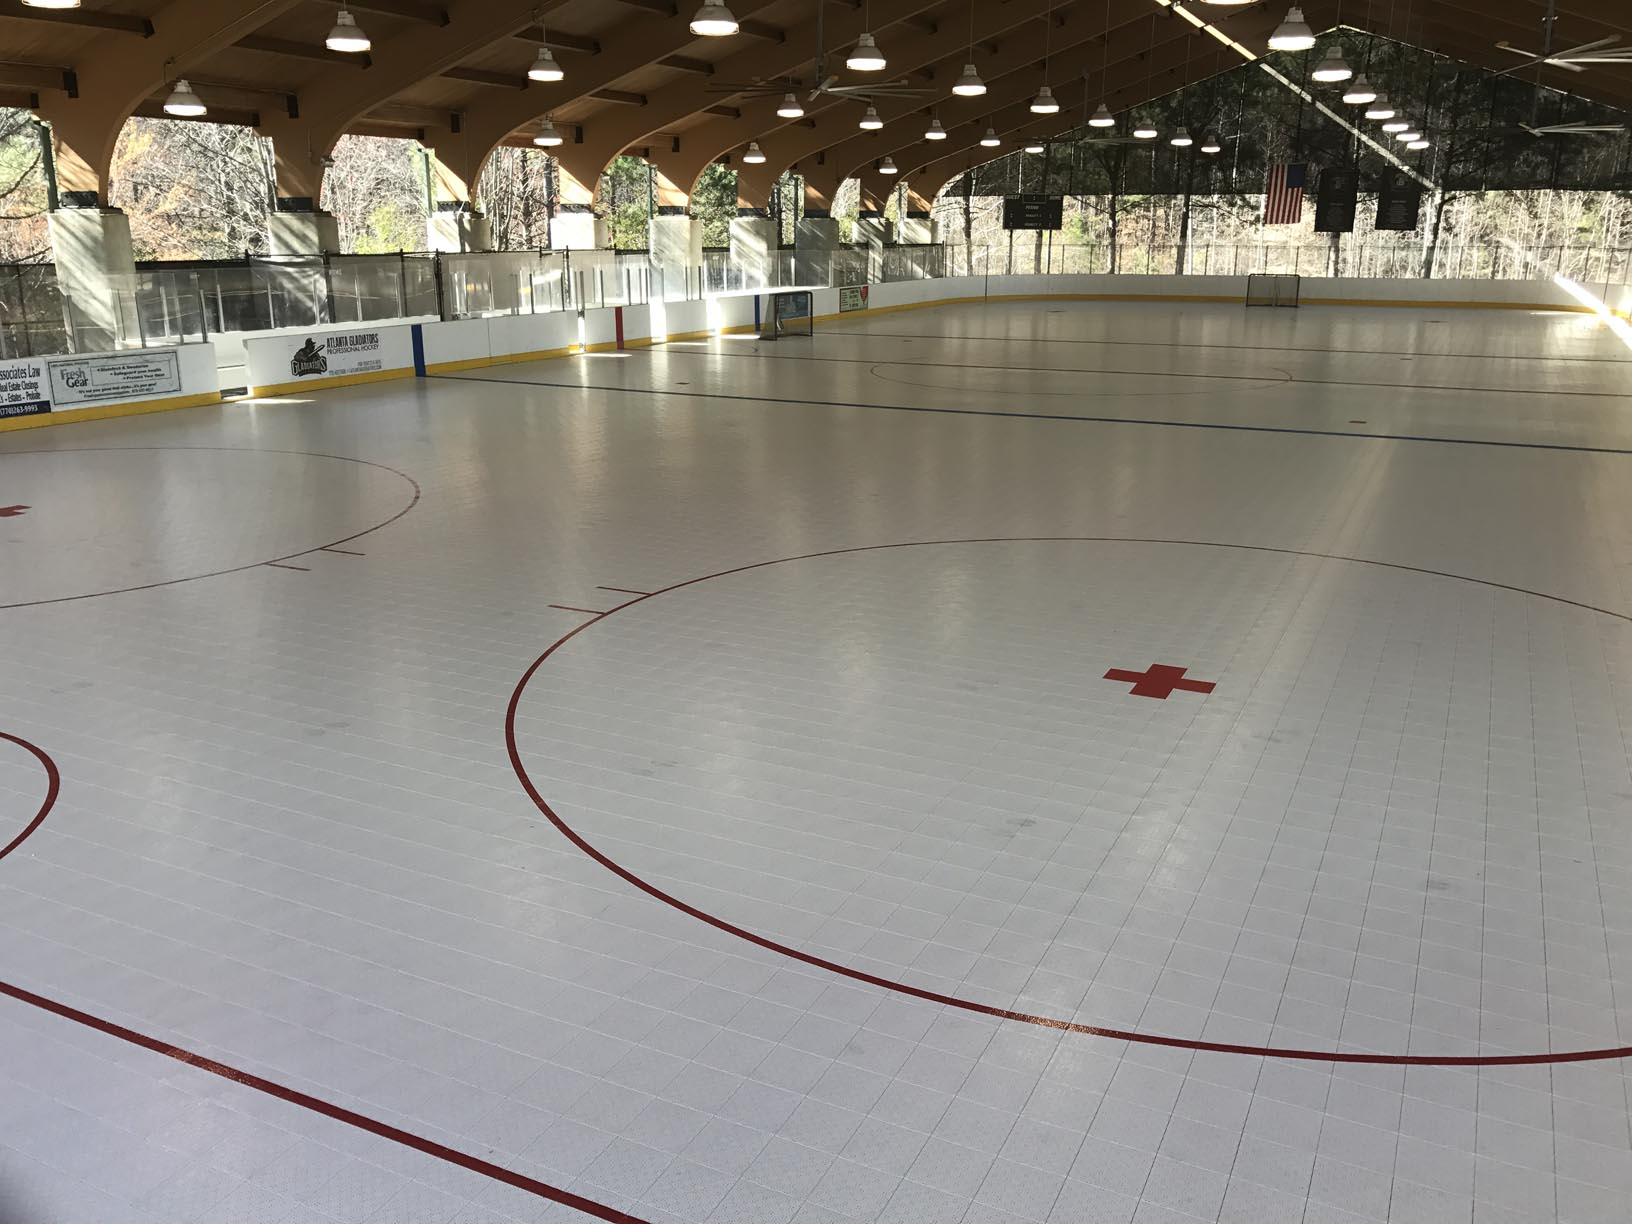 Chicago Roller Hockey arena in daylight